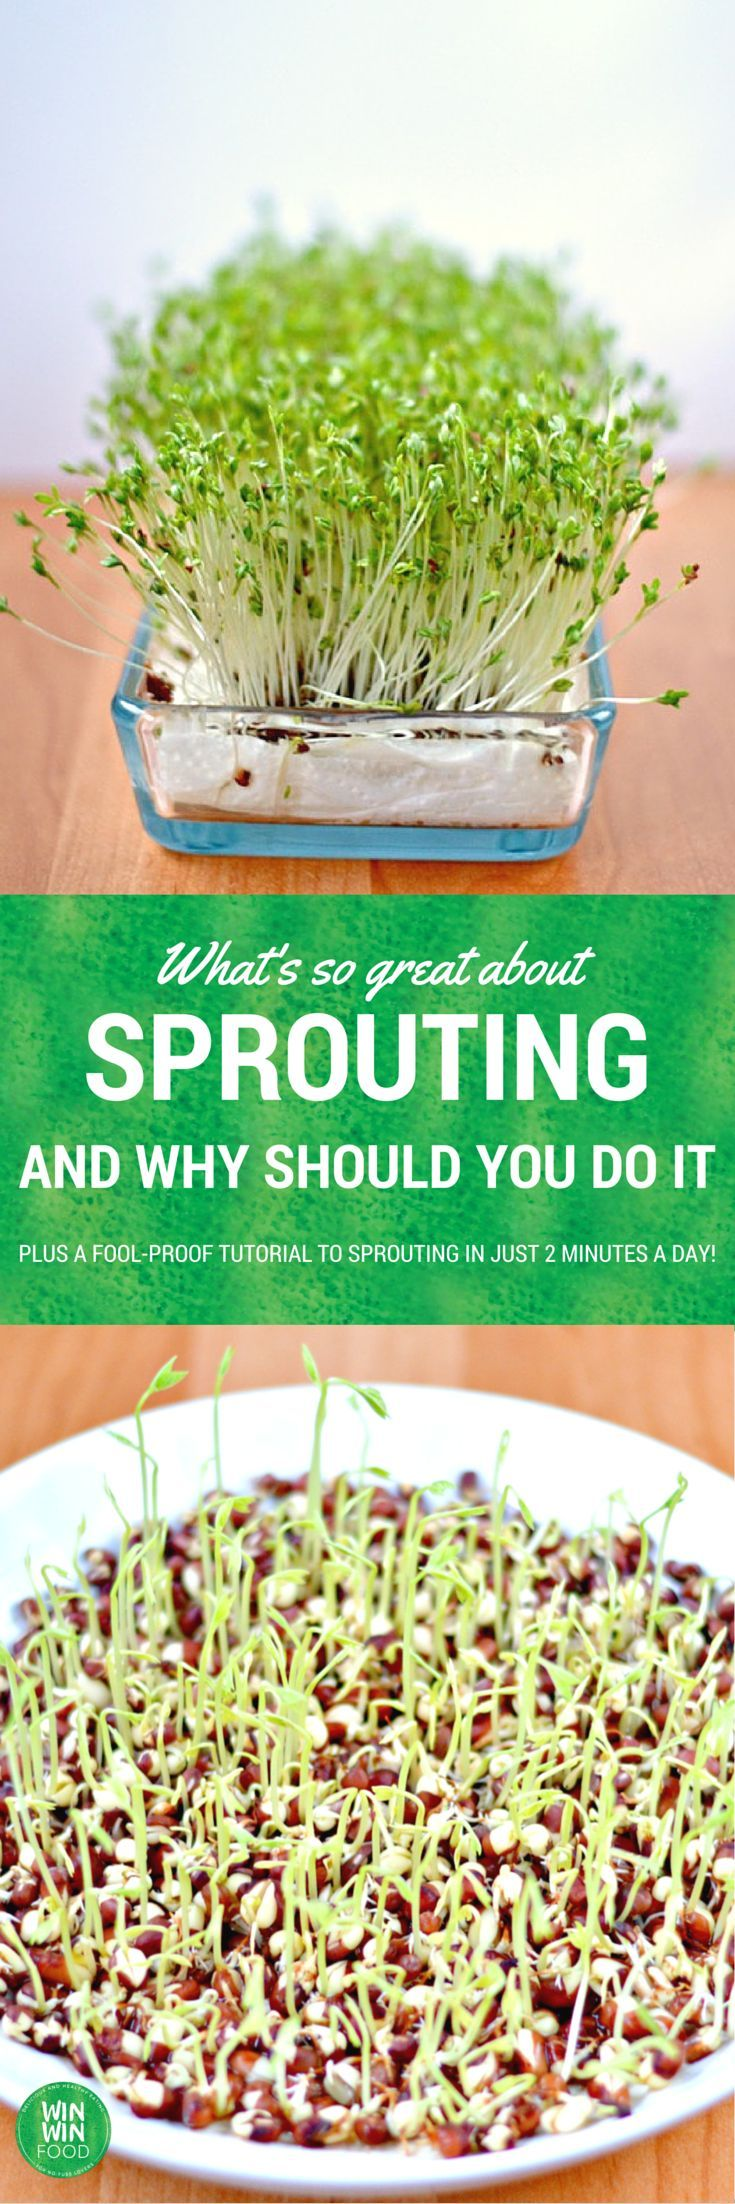 Sprouting Tutorial   WIN-WINFOOD.com #healthyliving #nutrition